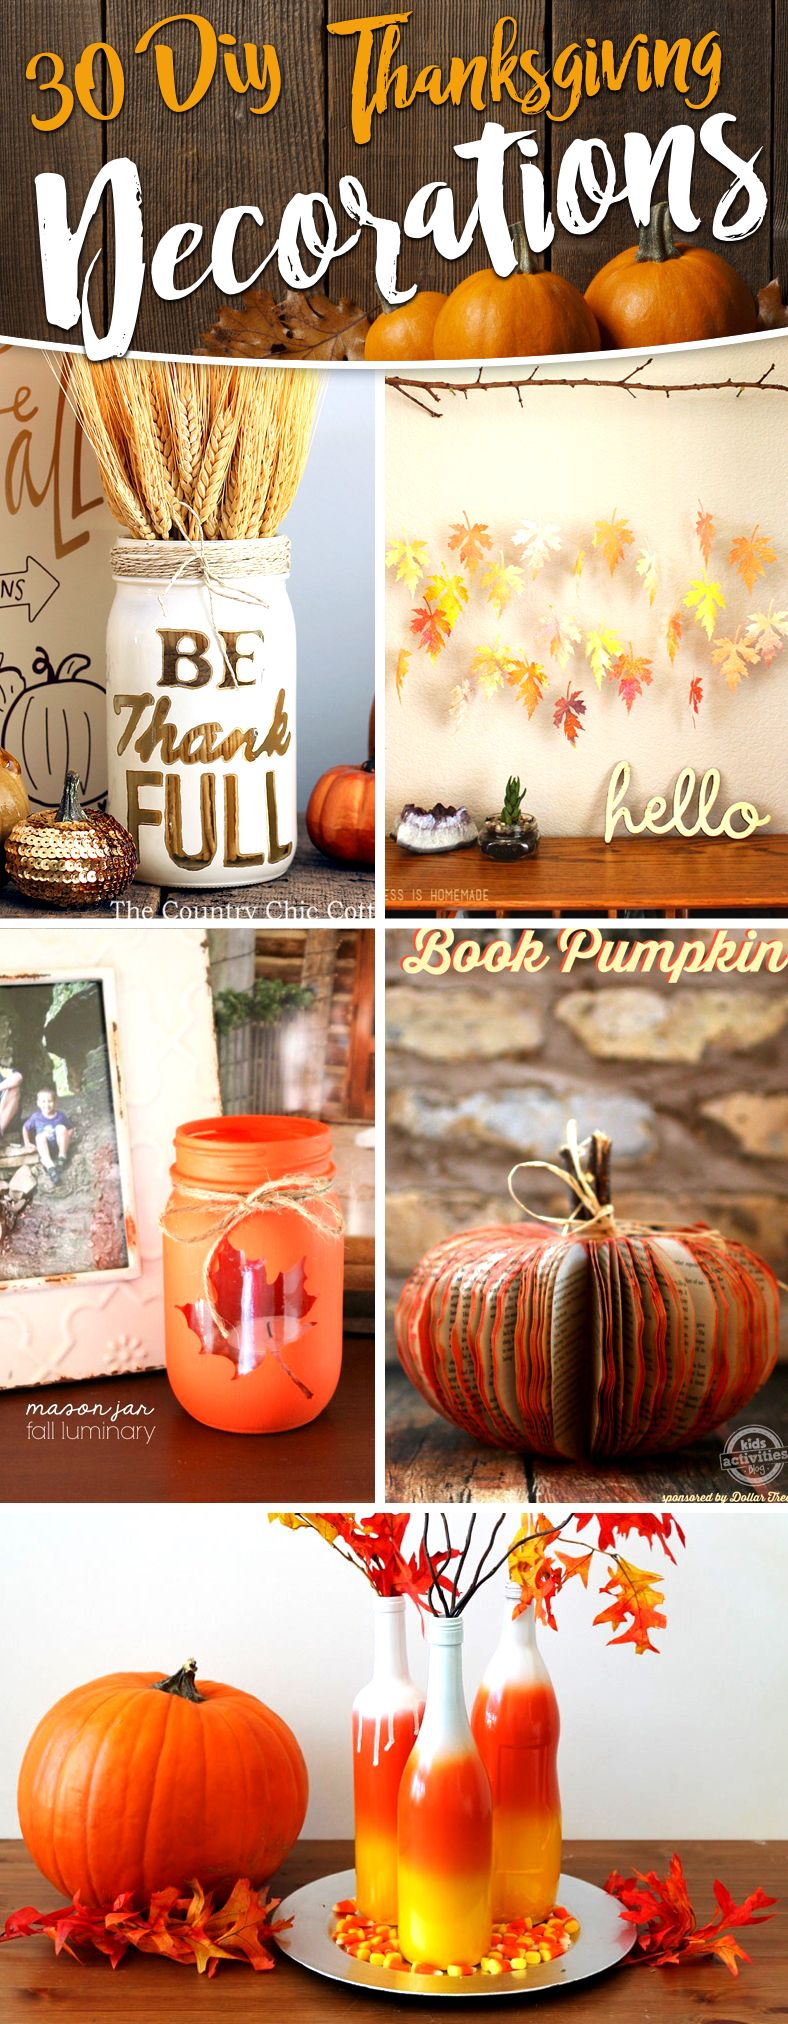 Diy thanksgiving decor pinterest - The Thankful Tree With Chalk Decor Source Simplyvintagegirl Mason Jar Fall Luminaries Decor Source Createcraftlove How To Make Diy Thanksgiving